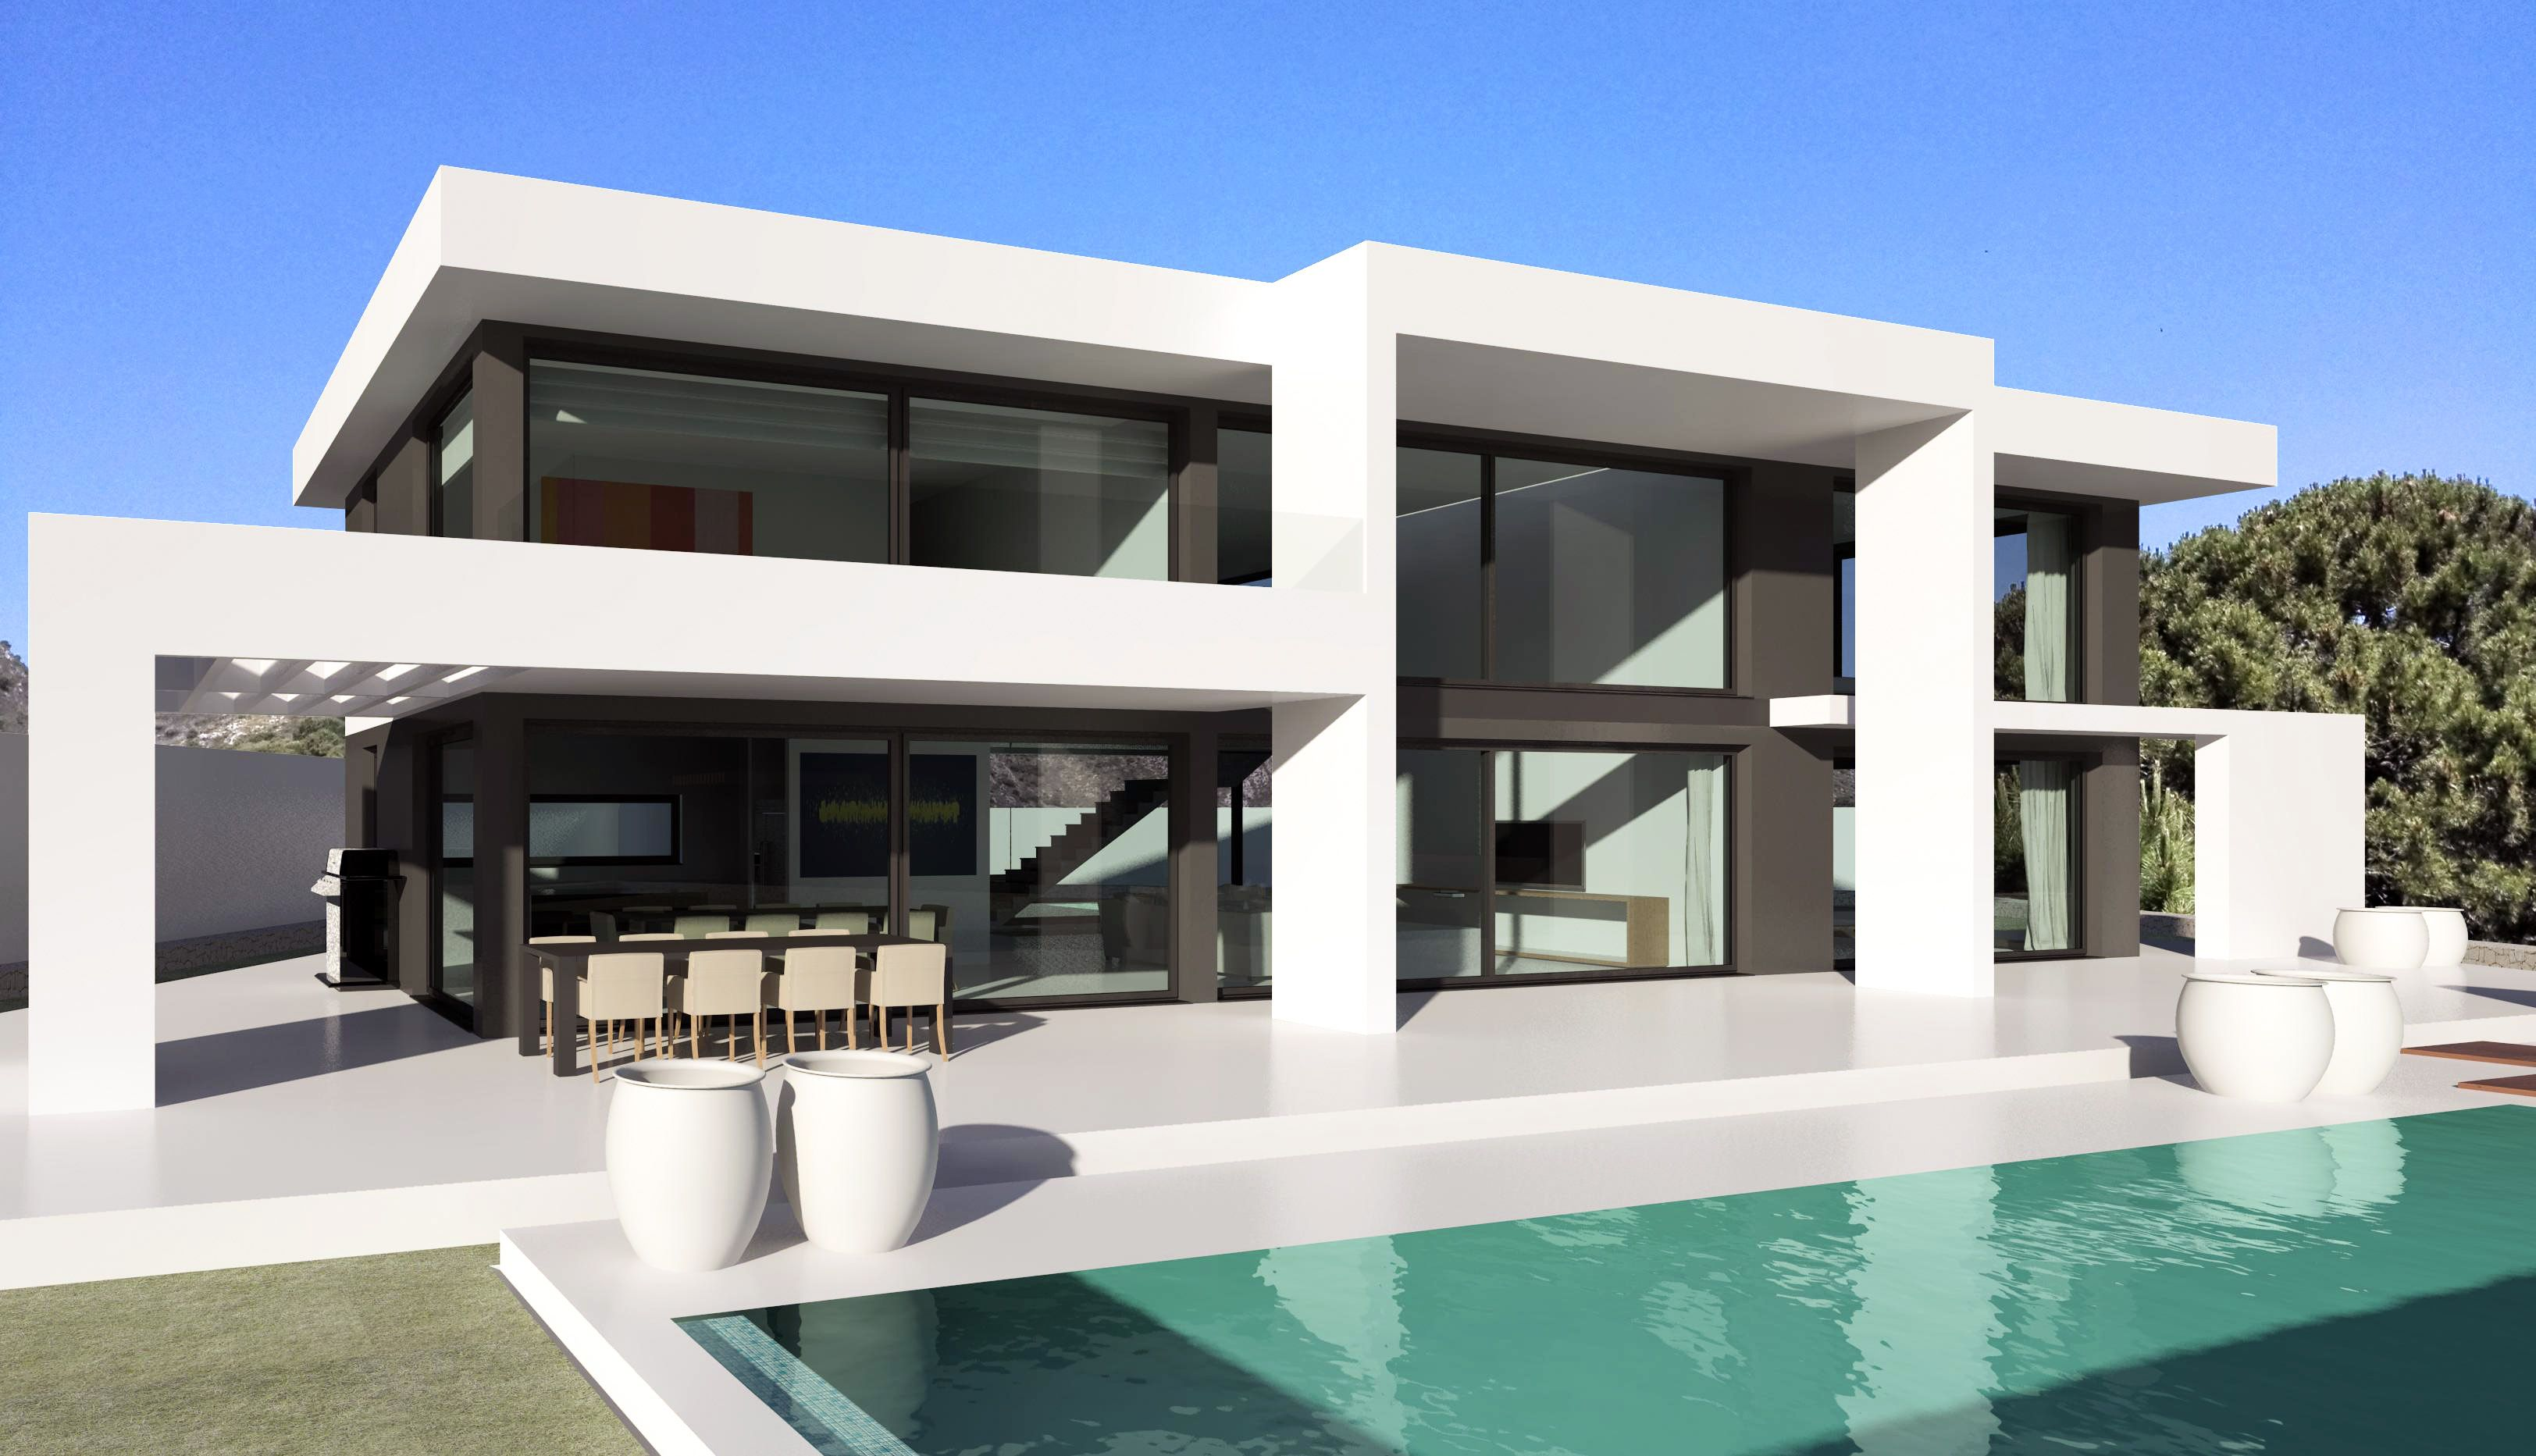 Modern turnkey villas in spain france portugal for Modern villa architecture design